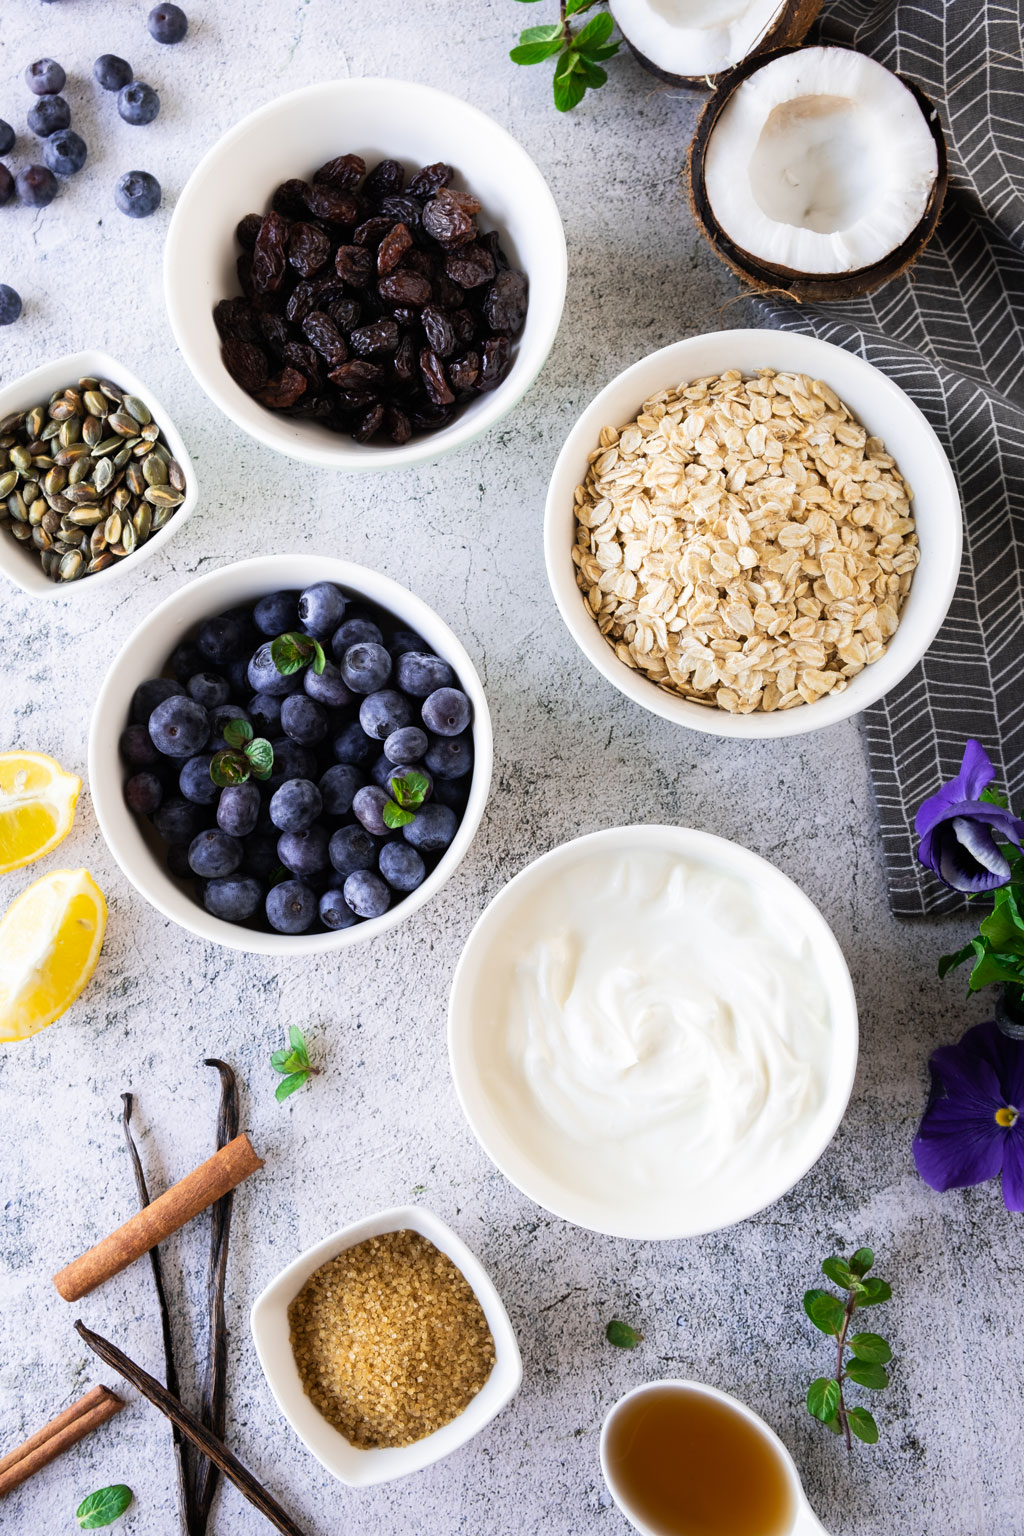 Vanilla yogurt with blueberry compote and granola ingredients.